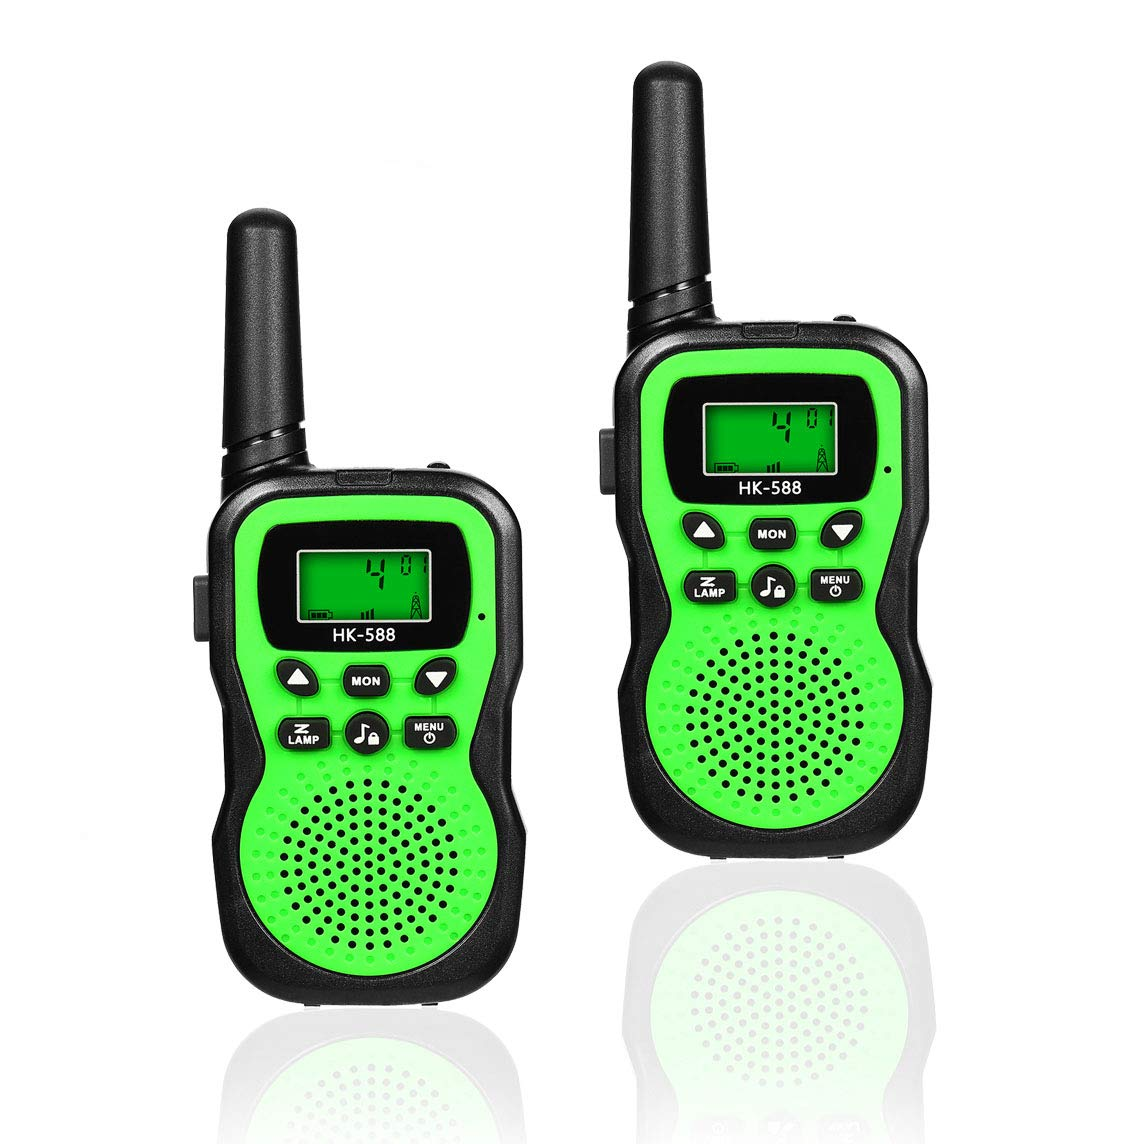 Best Gifts for Kid, JRD&BS WINL Toys Walkie Talkies for Kid,Fun Toys for 4-5 Year Old Boys,Kid Toys for 6-10 Year Old Travel Hunting,HK-588 1 Pair(Green) by JRD&BS WINL (Image #1)